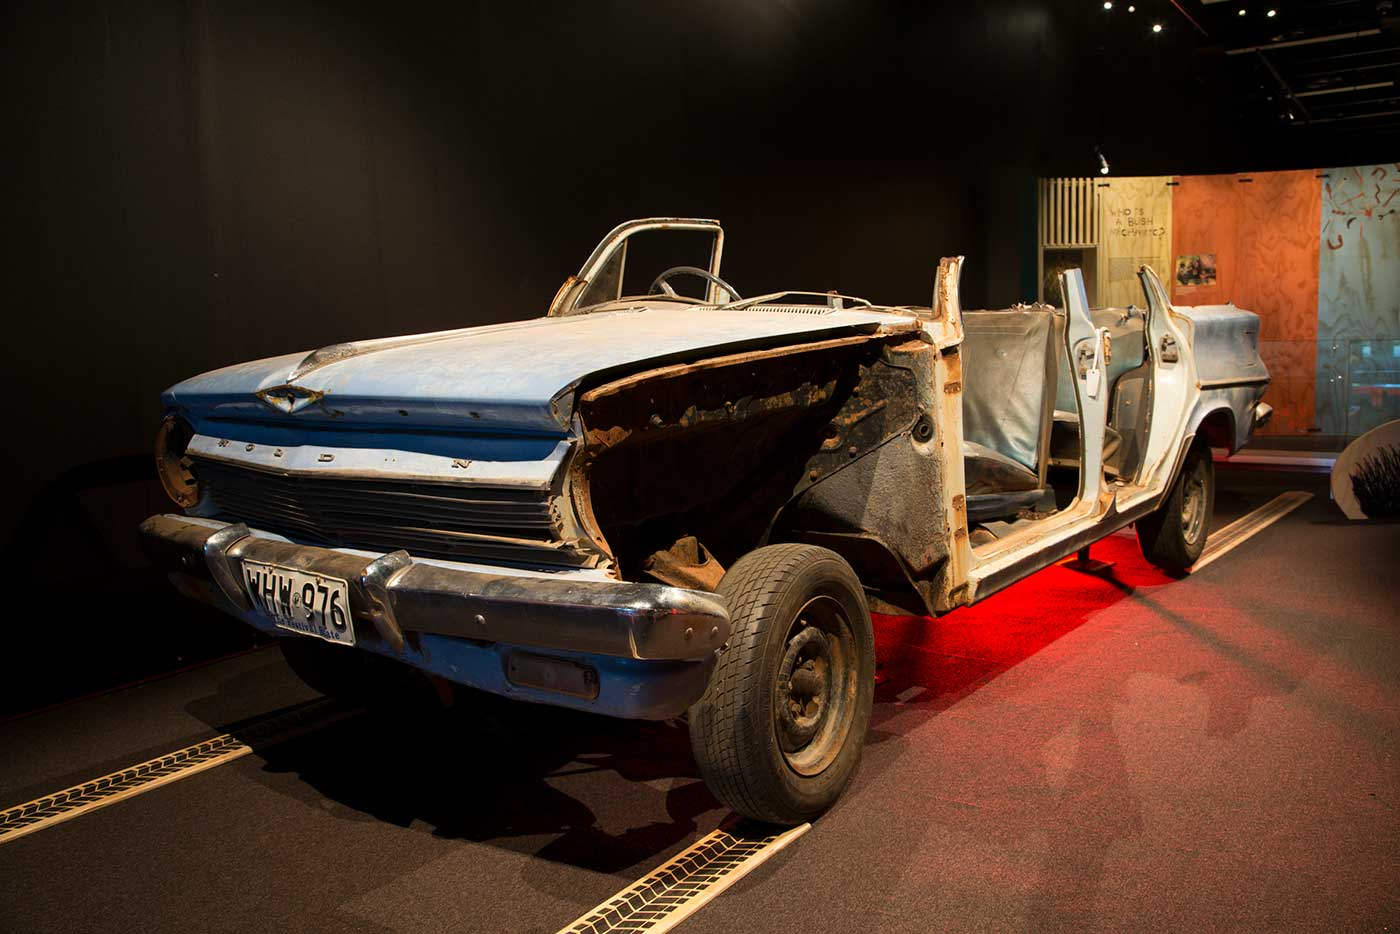 Blue Holden car missing its roof and most passenger side panels. - click to view larger image